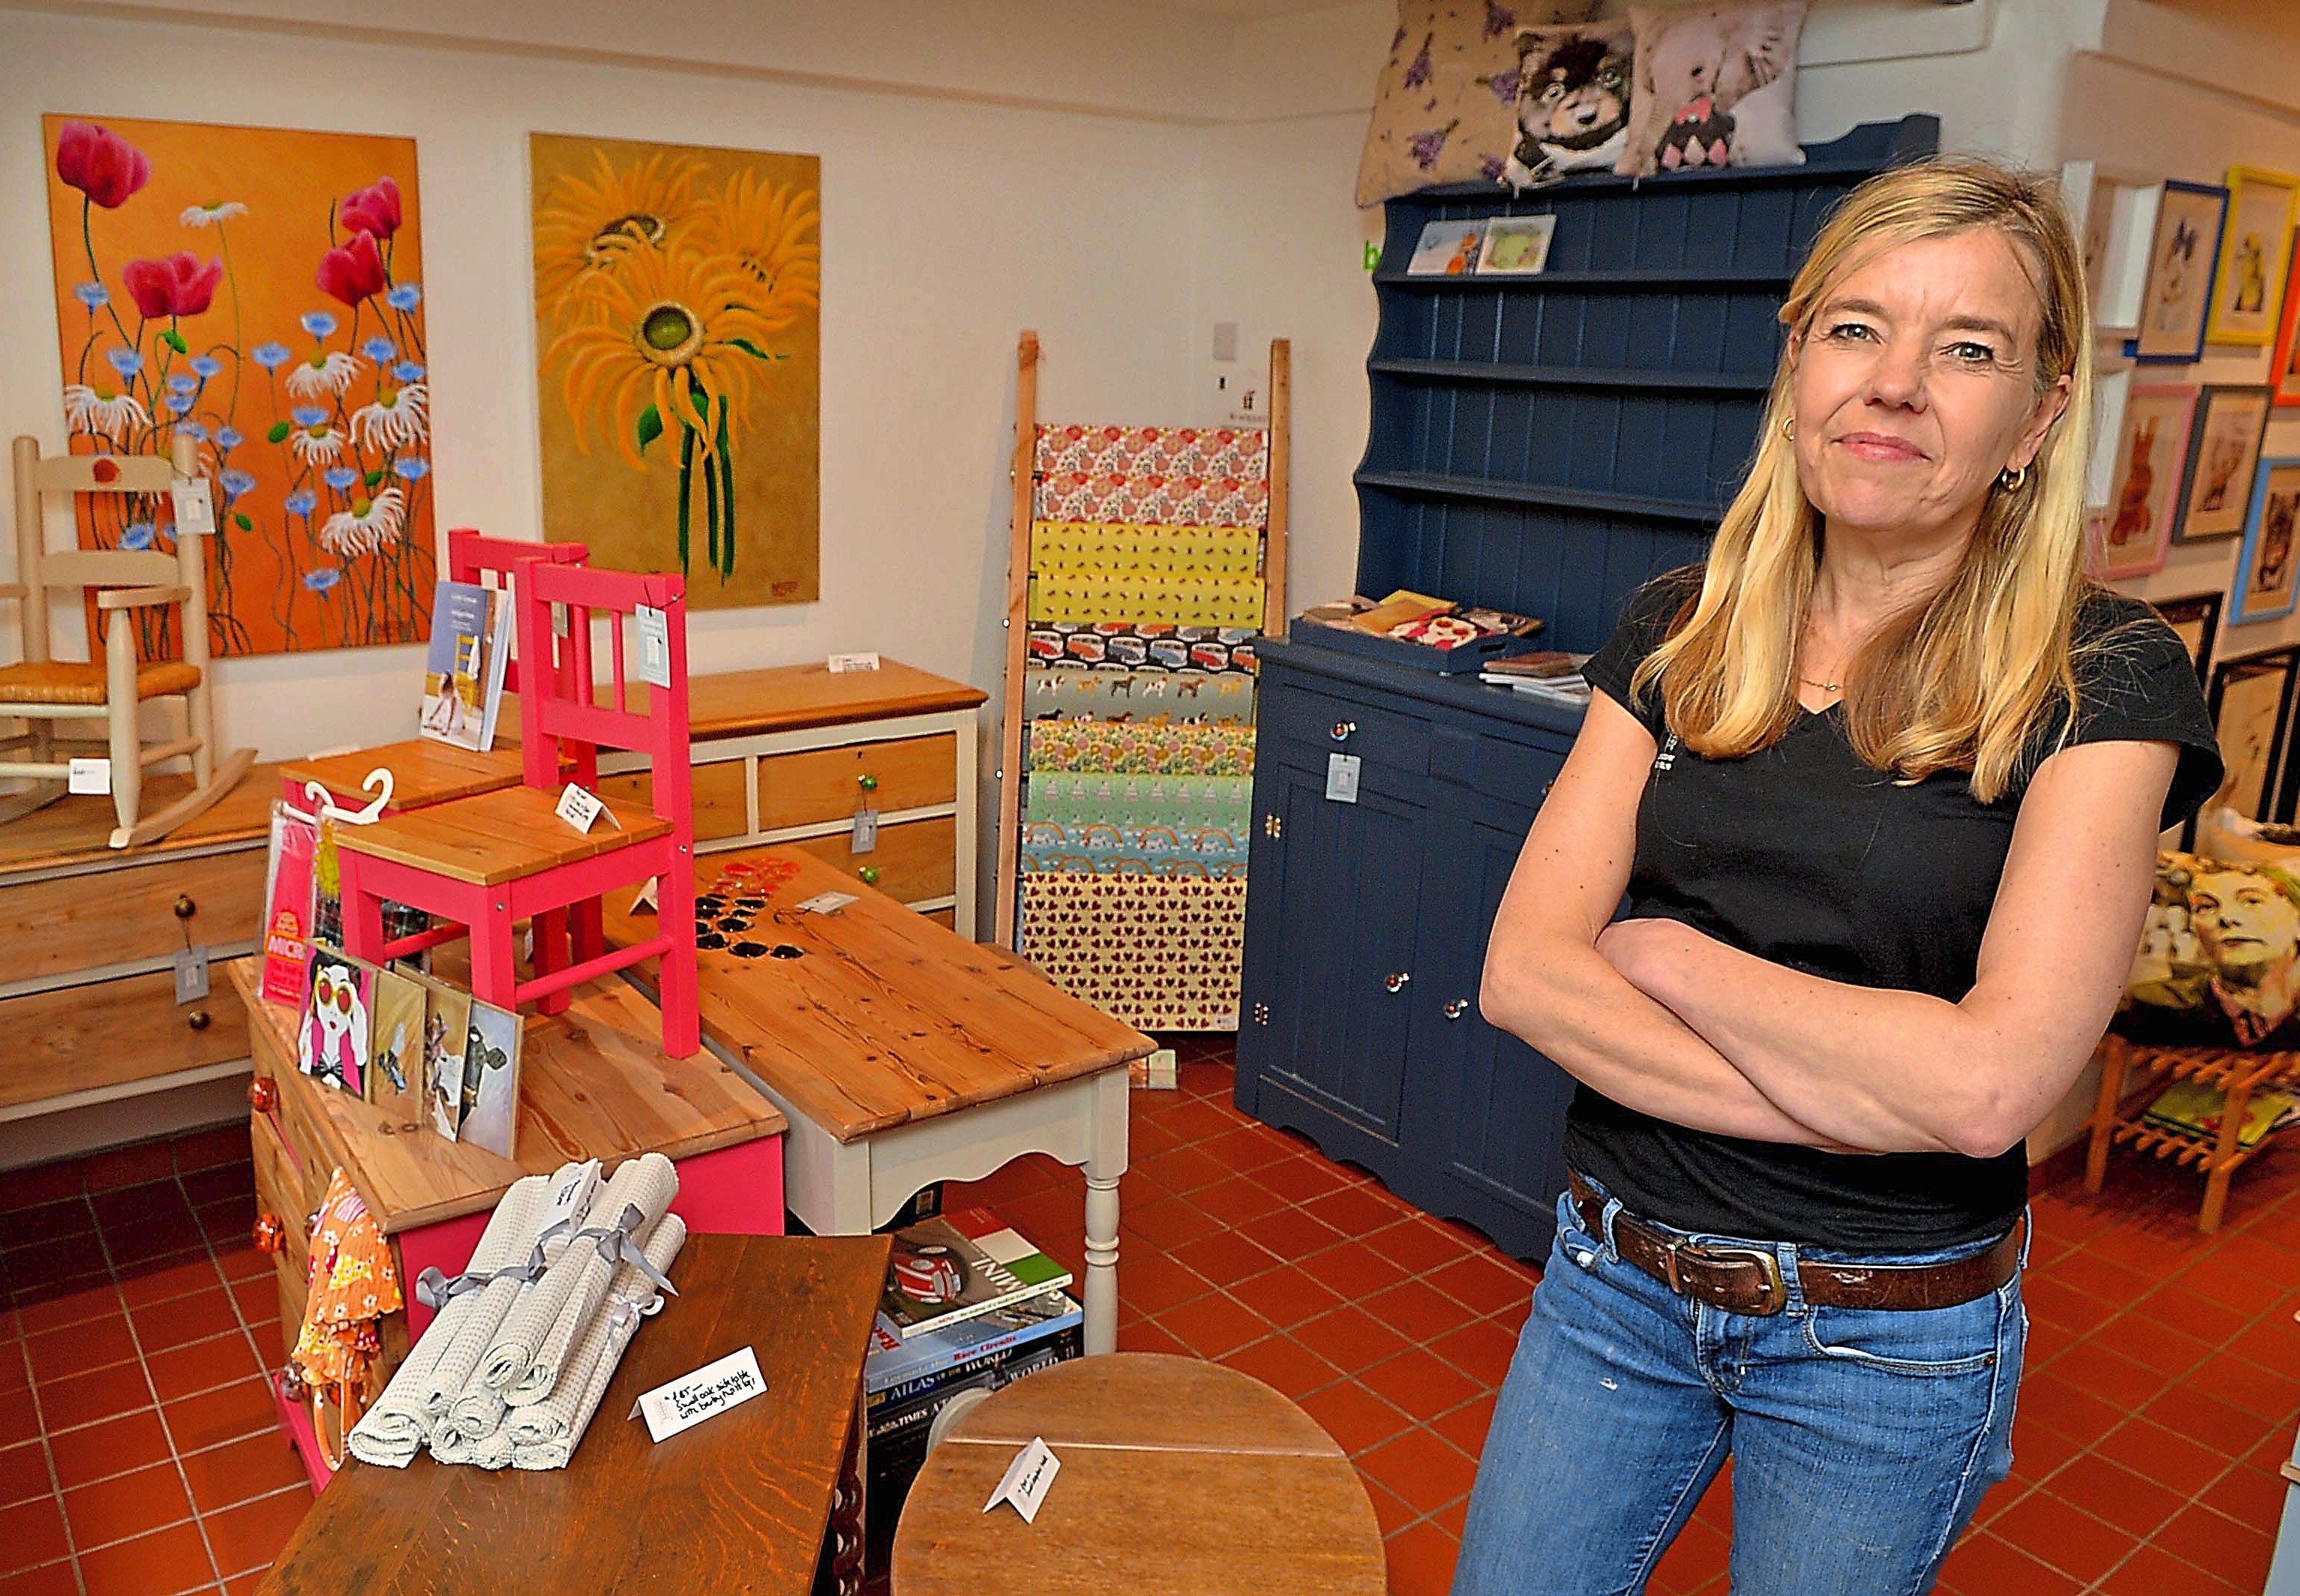 Salvaging The Unwanted Meet Vanessa Dee Who Gives Furniture A New Lease Of Life Shropshire Star